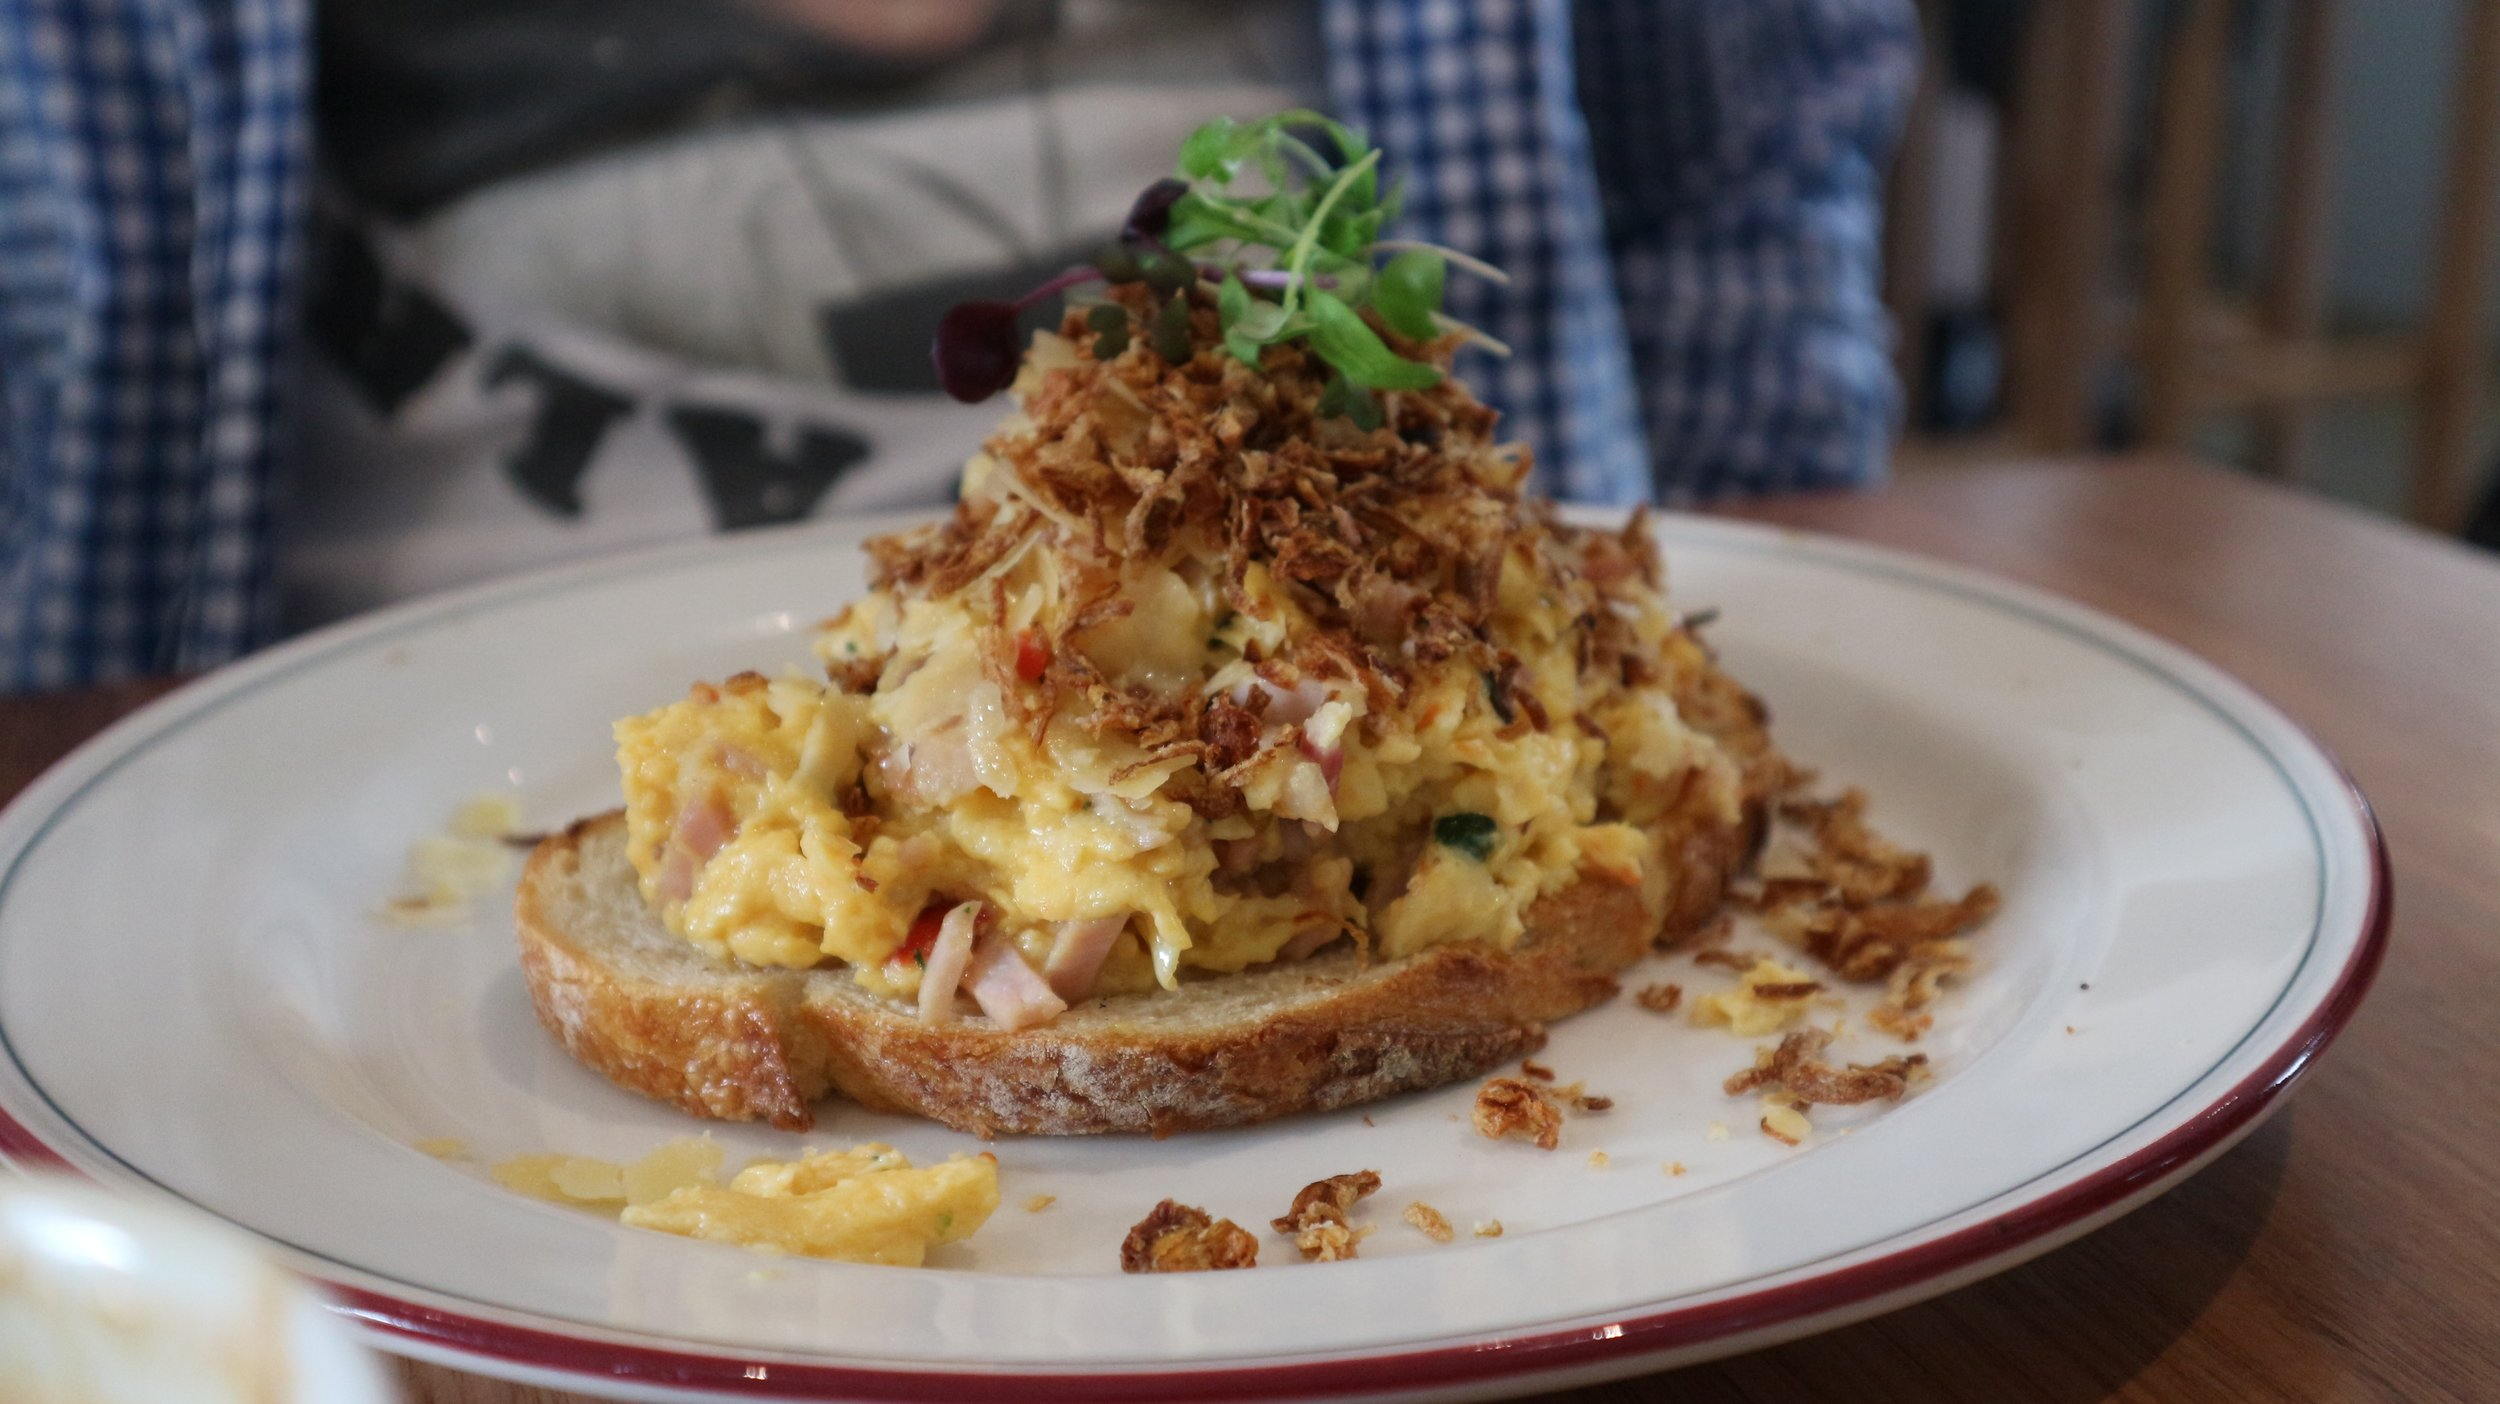 Chilli Scrambled Eggs - with coriander, bacon, cherry tomatoes, Vietnamese mint, fried shallots, & parmesan on sourdough